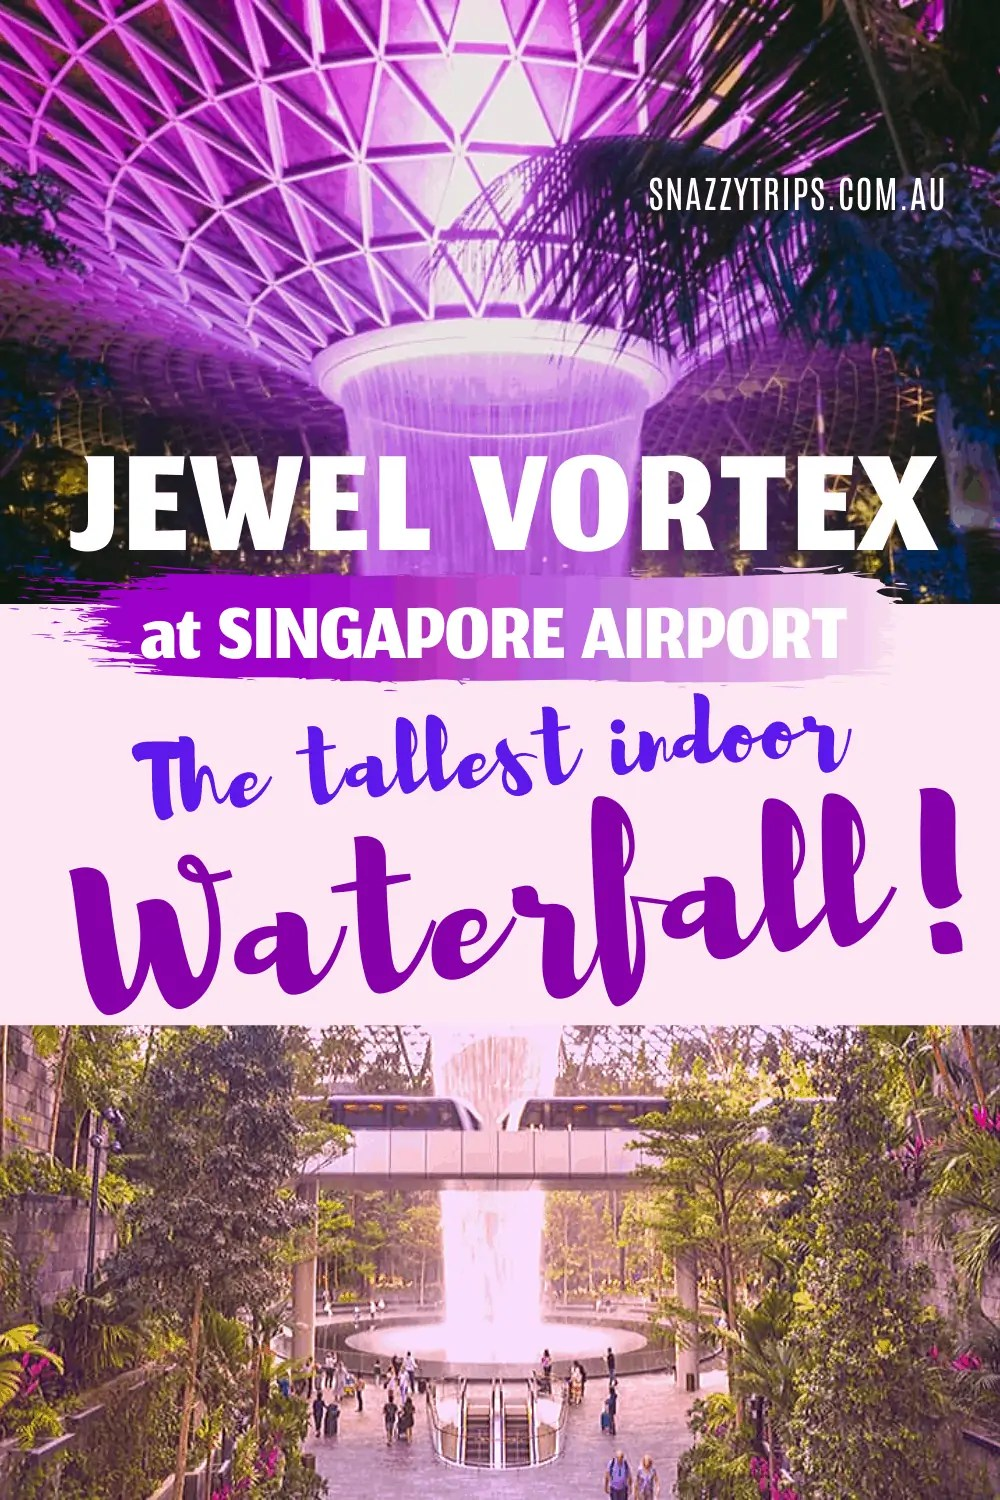 indoor waterfall at Singapore Airport